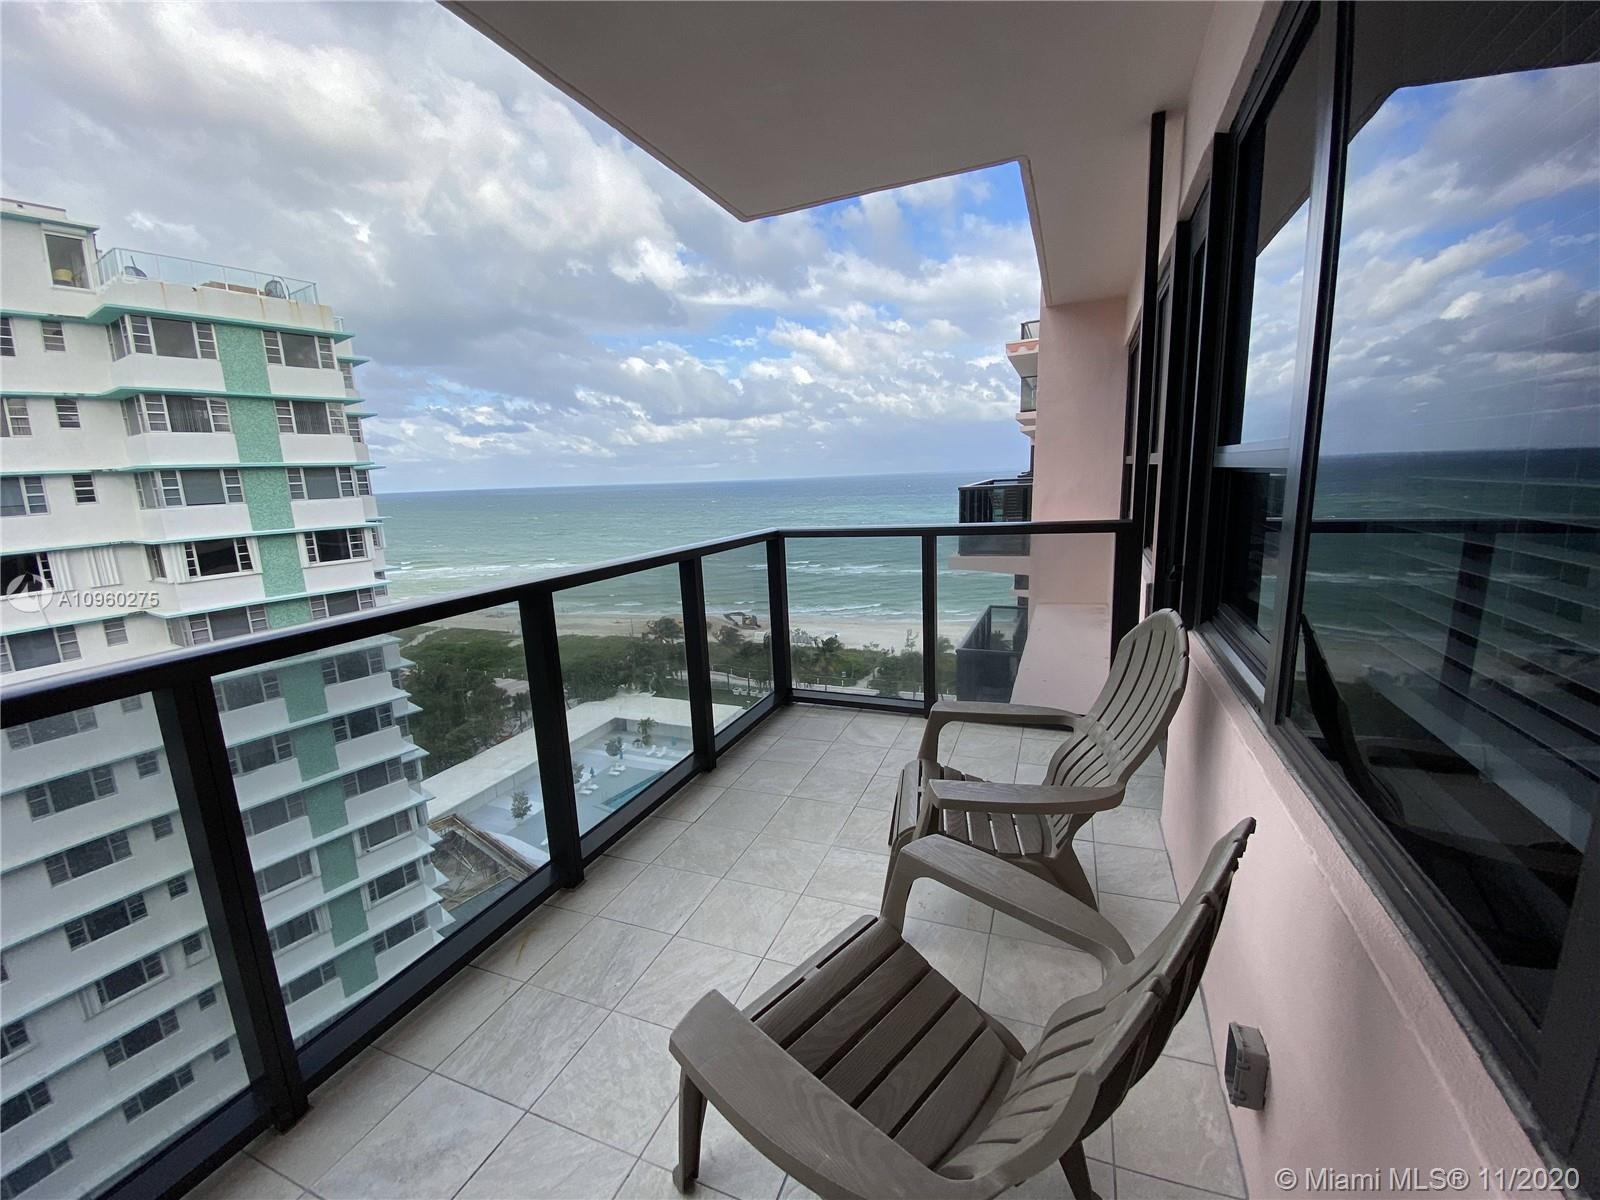 Welcome to the Alexander Hotel, a hidden gem in the heart of Miami Beach! This updated unit features